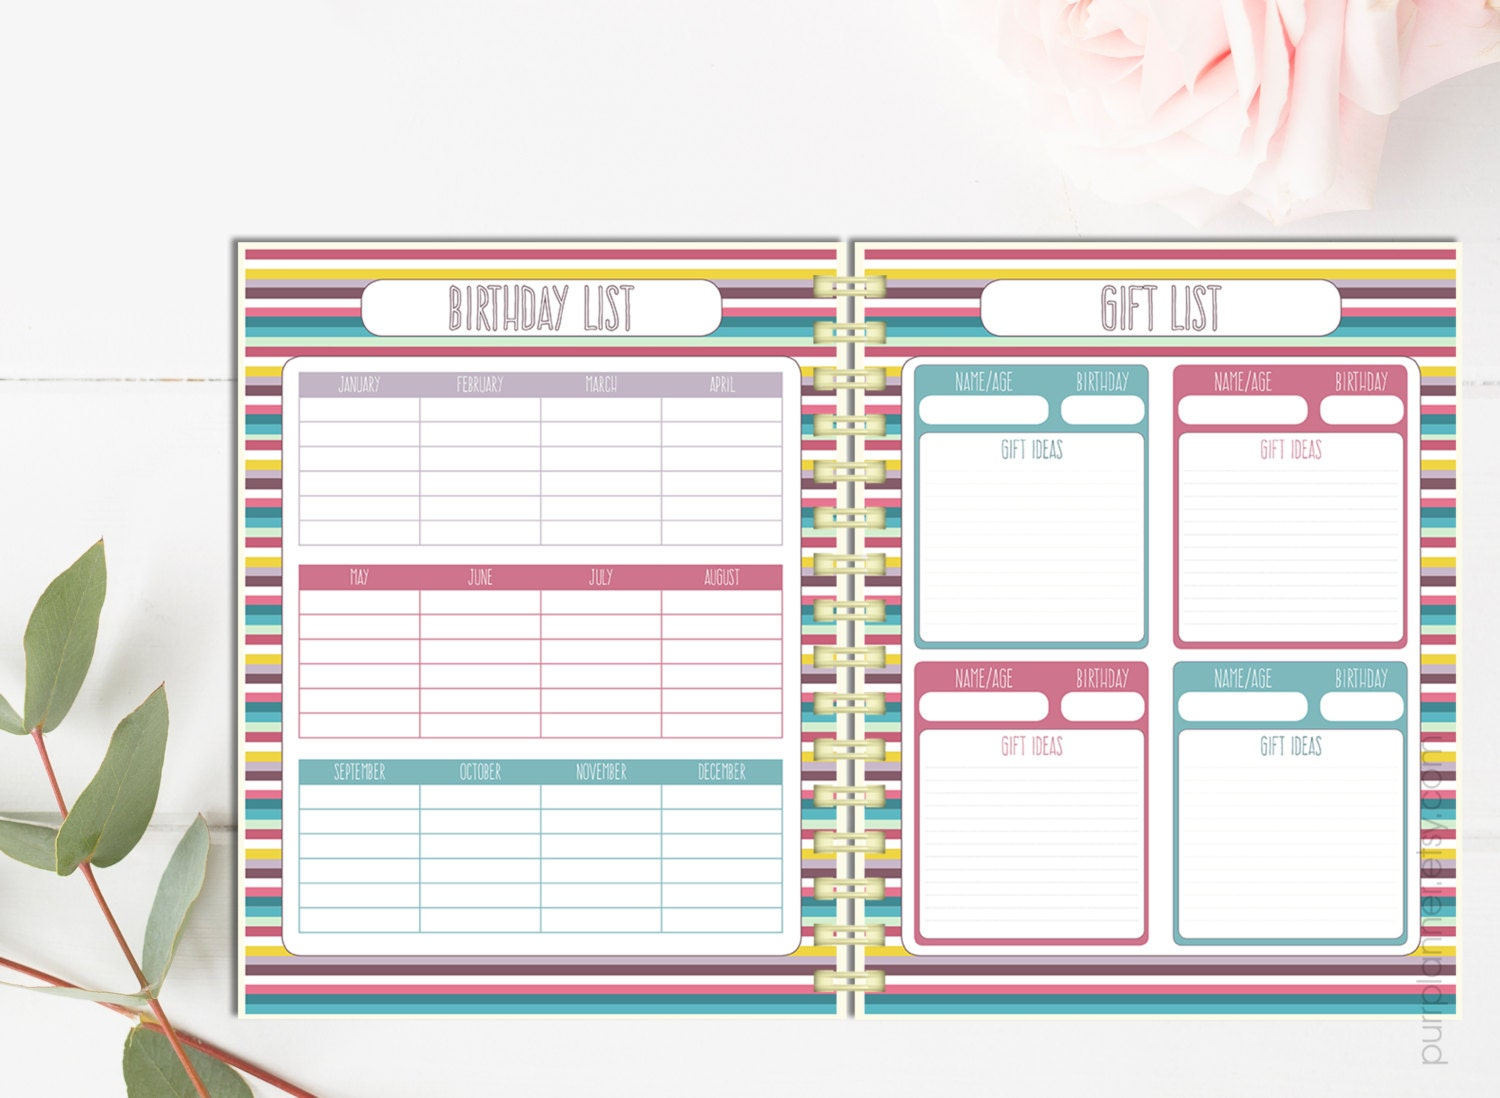 Printable birthday tracker gift Ideas list personal gift